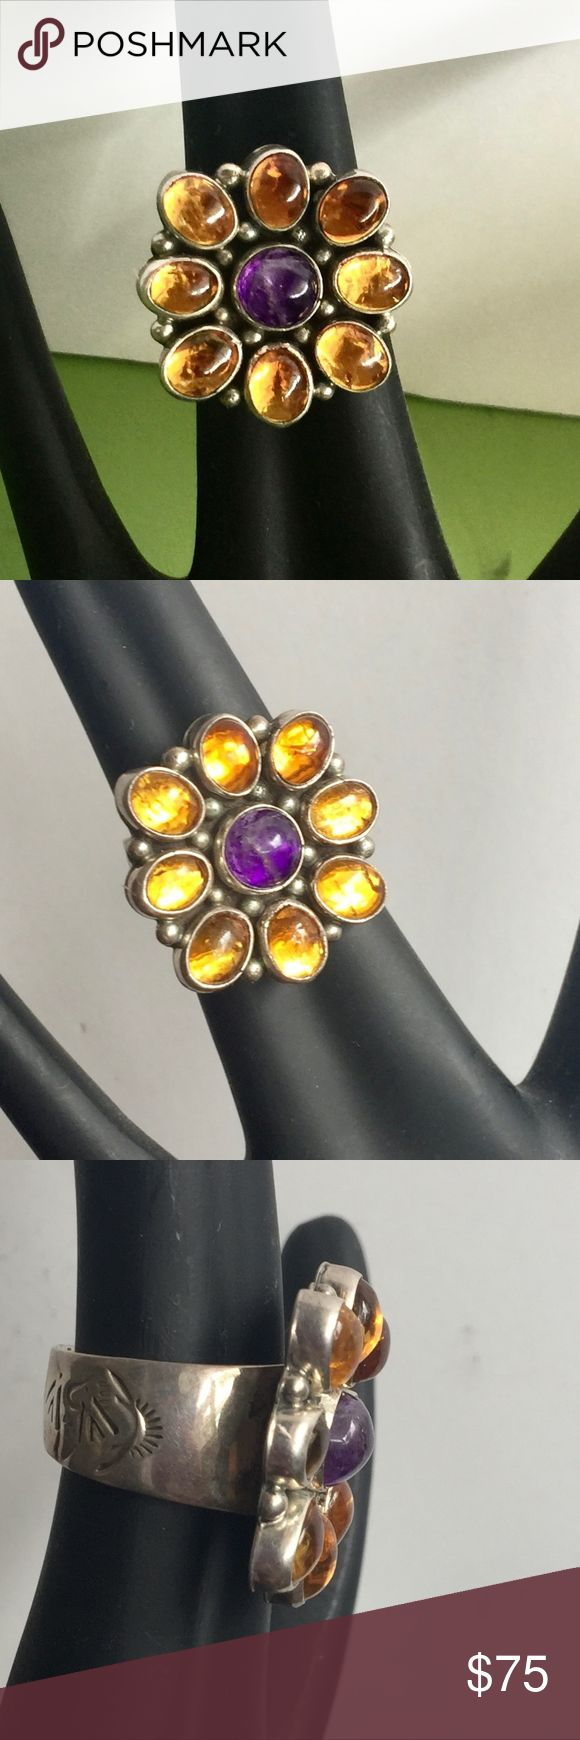 VTG Southwestern Signed BP Sterling Statement Ring Vibrant quality vintage sterling silver cabochon flower cocktail ring - Signed BP Sterling - Solid, well made sterling silver, Native American looking bear claw hand-stamped design on band, bezel set stones that I believe to be a center amethyst cabochon and 8 surrounding citrine glass cabochon petals - The ring is adjustable - About 14 grams - Very good pre-owned vintage condition - Please note, i am unsure if these are genuine gemstones or…